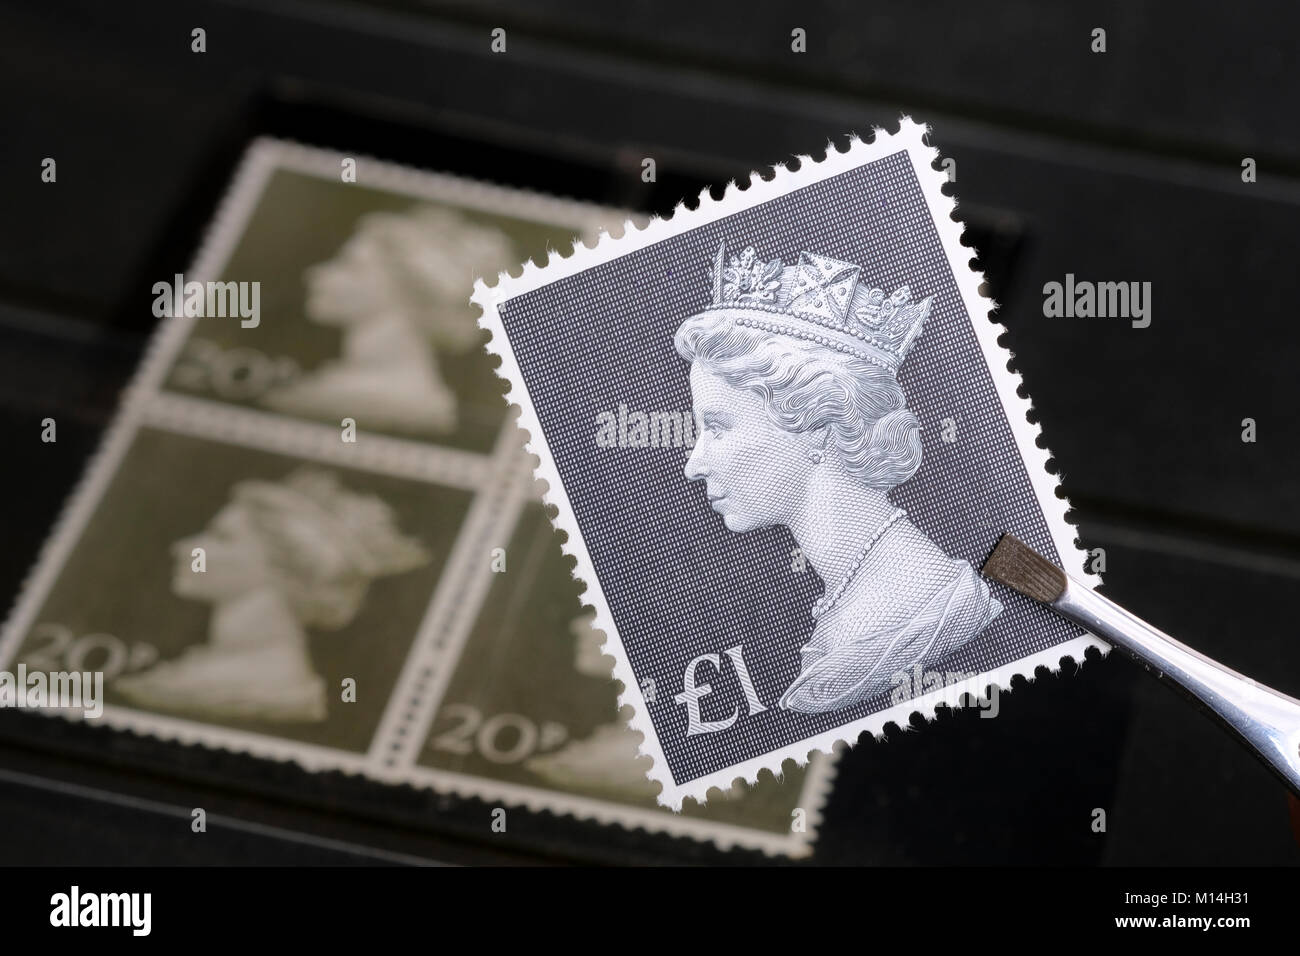 Old one-pound stamp dating from the 1970s. - Stock Image